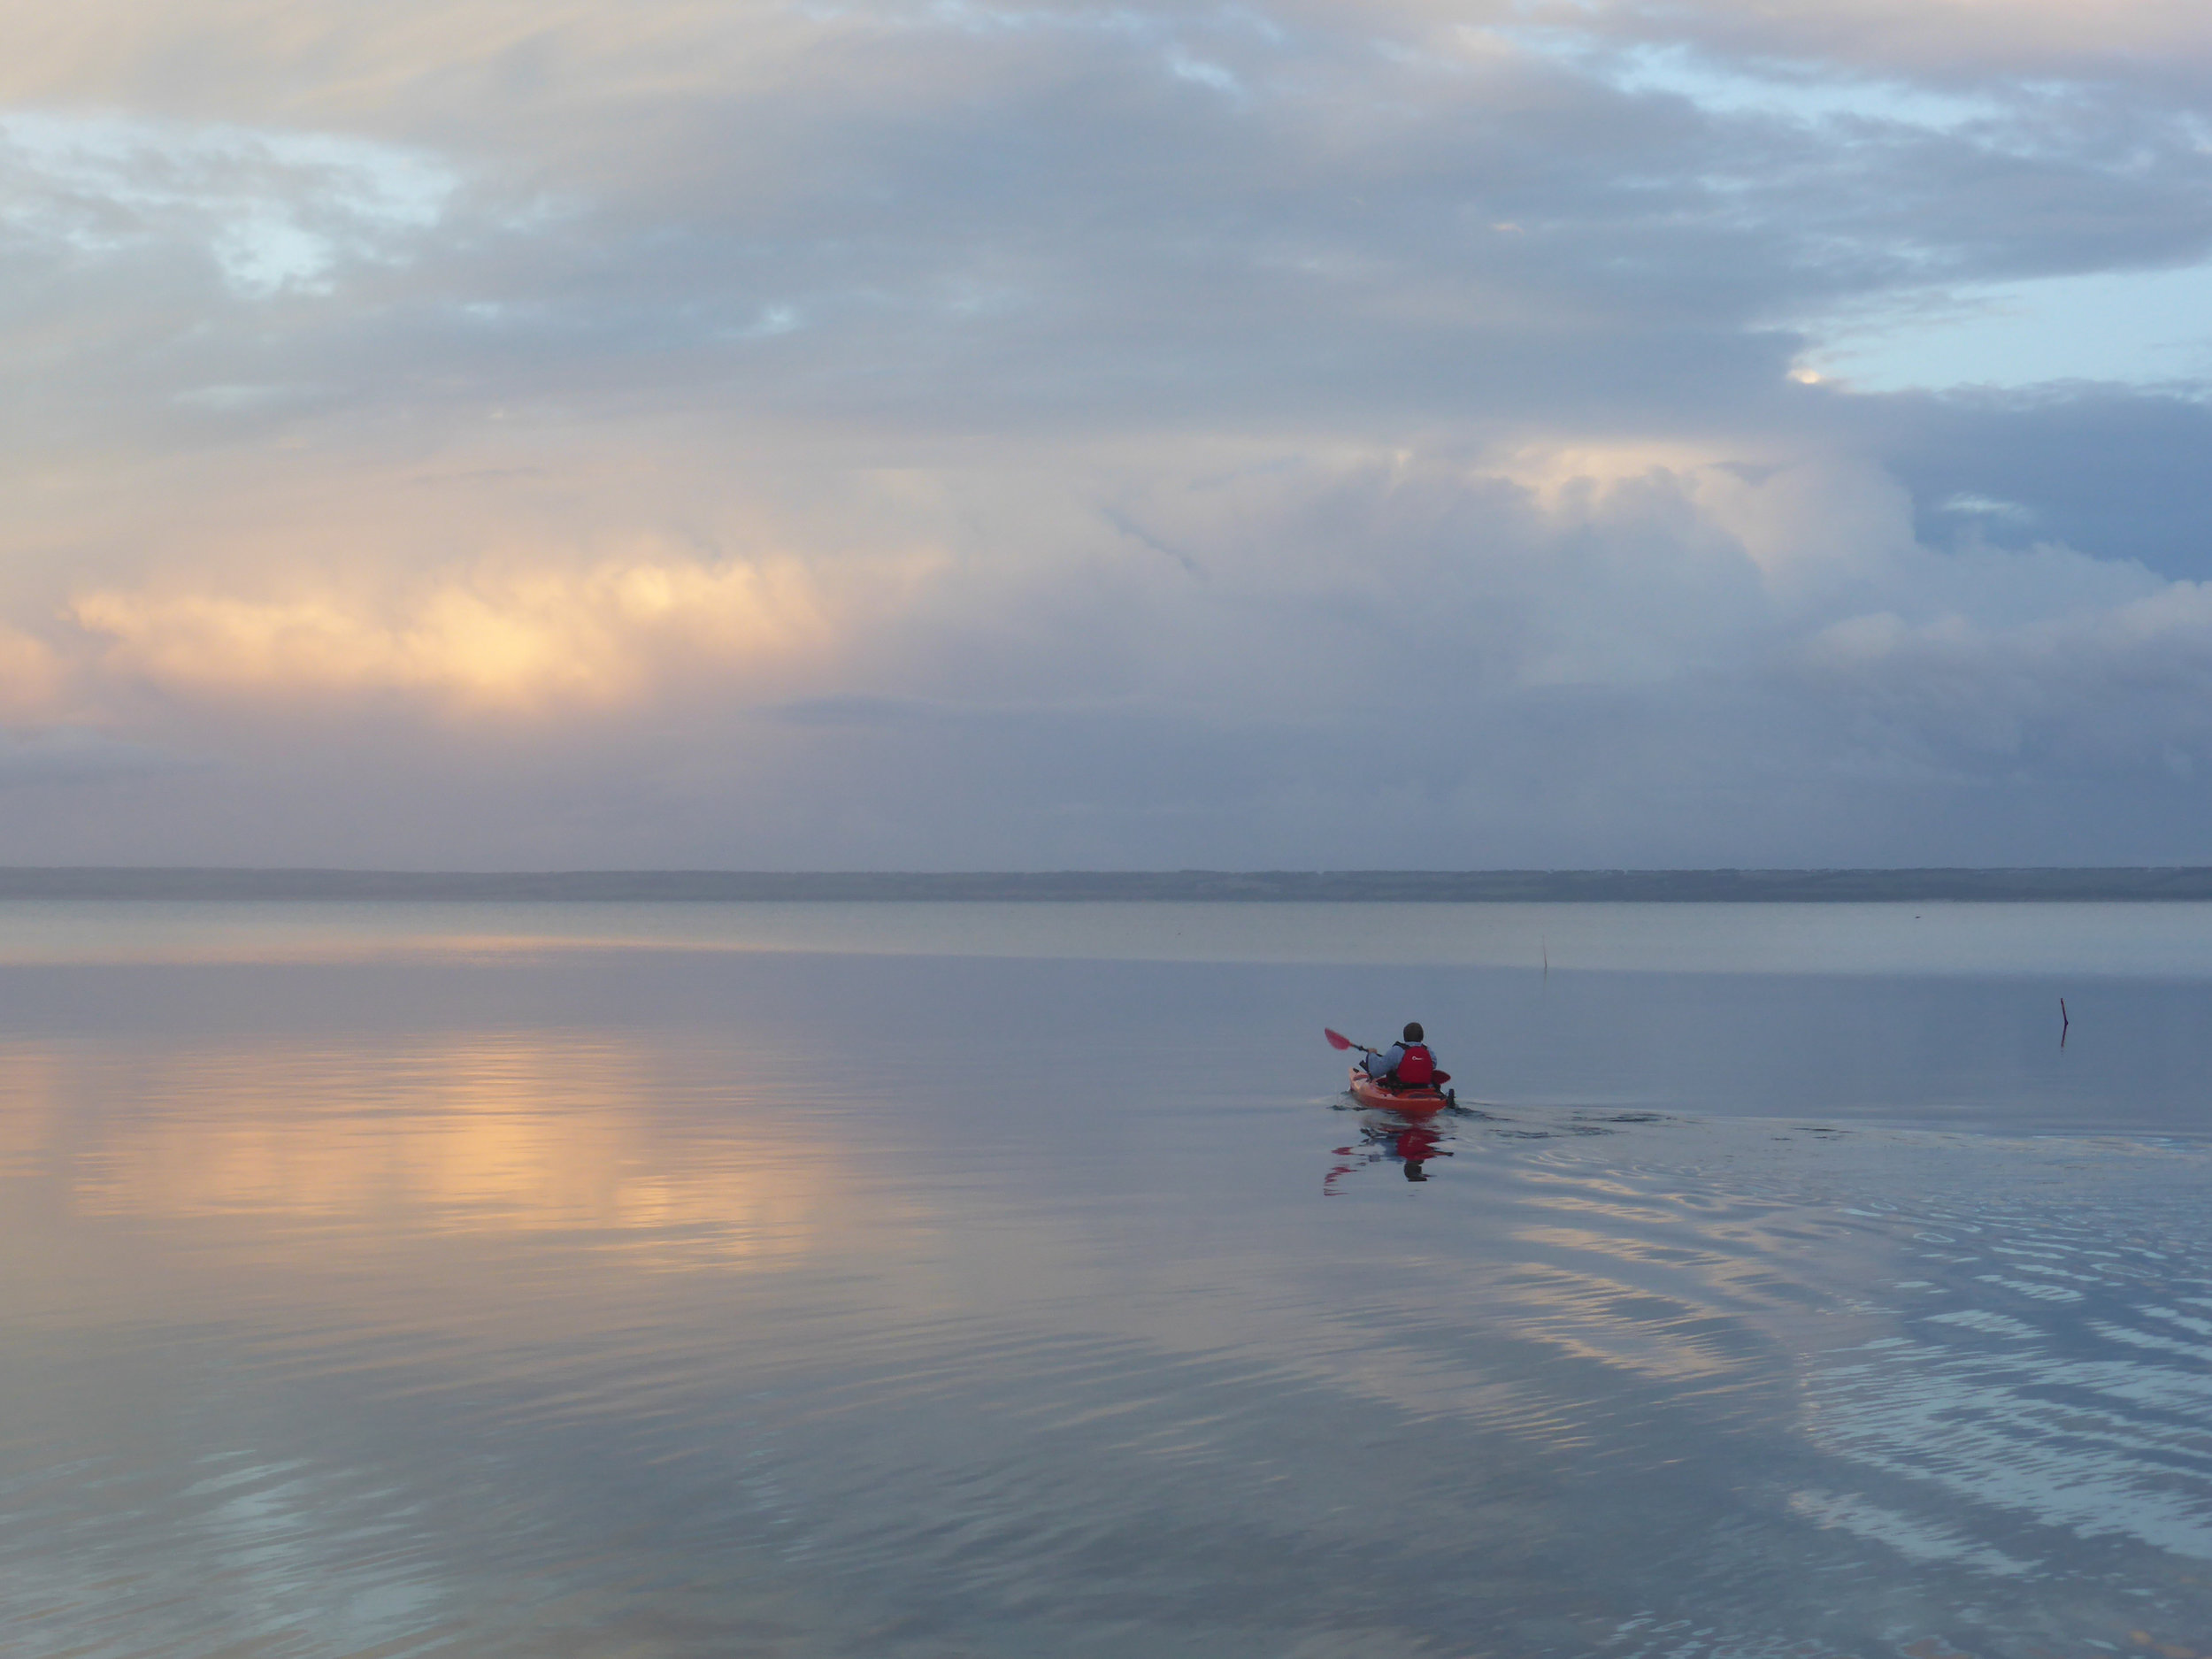 A kayak takes to the sea close to Island Chalet on a calm winter evening